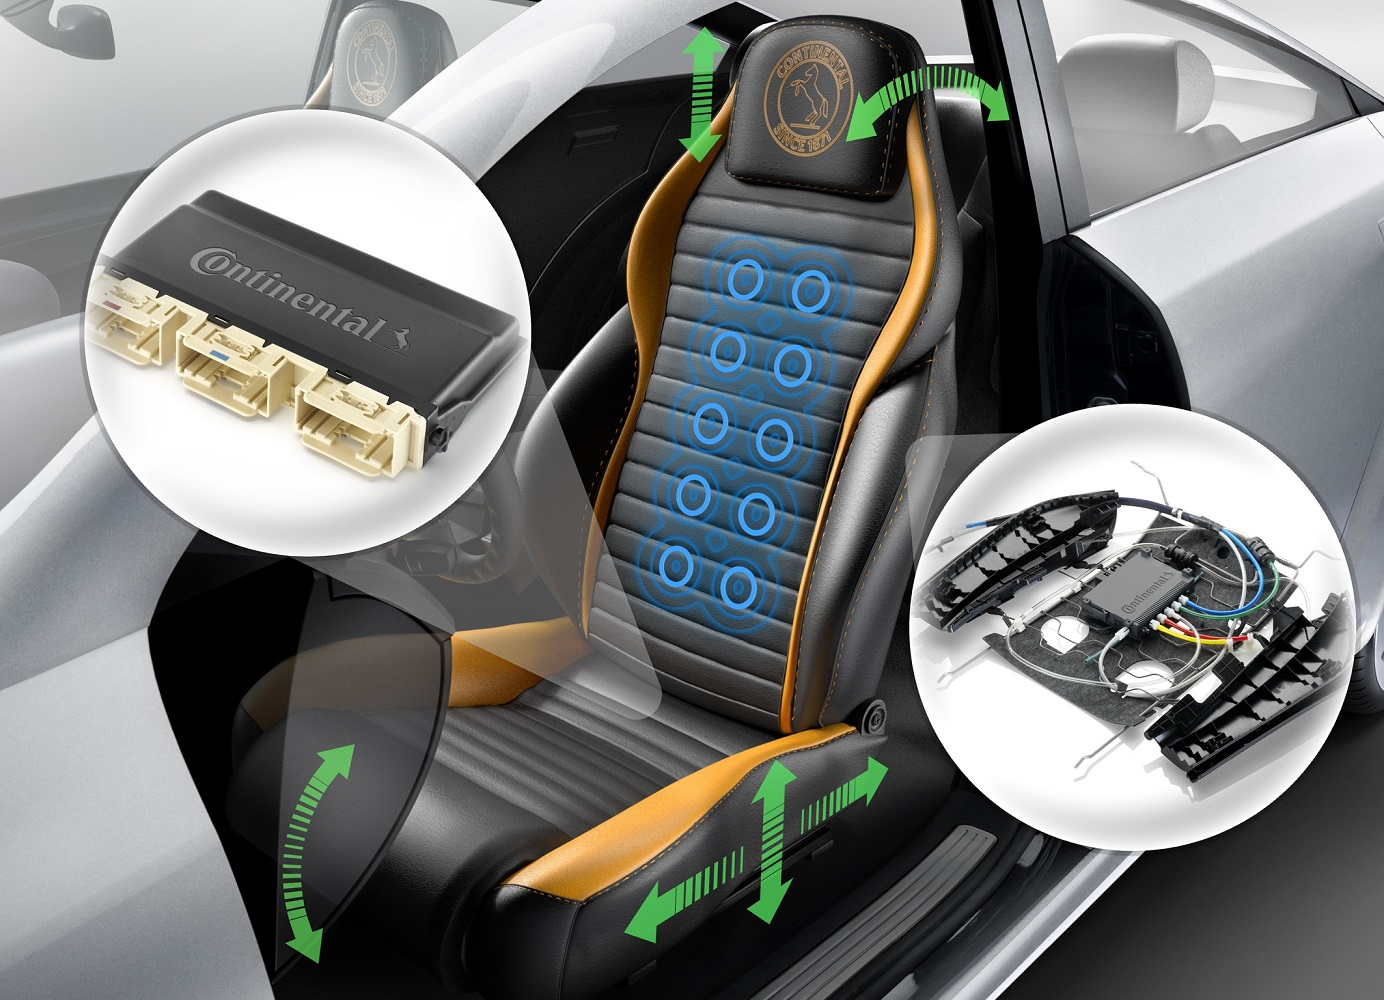 Continental controls for diverse electric seat adjustments